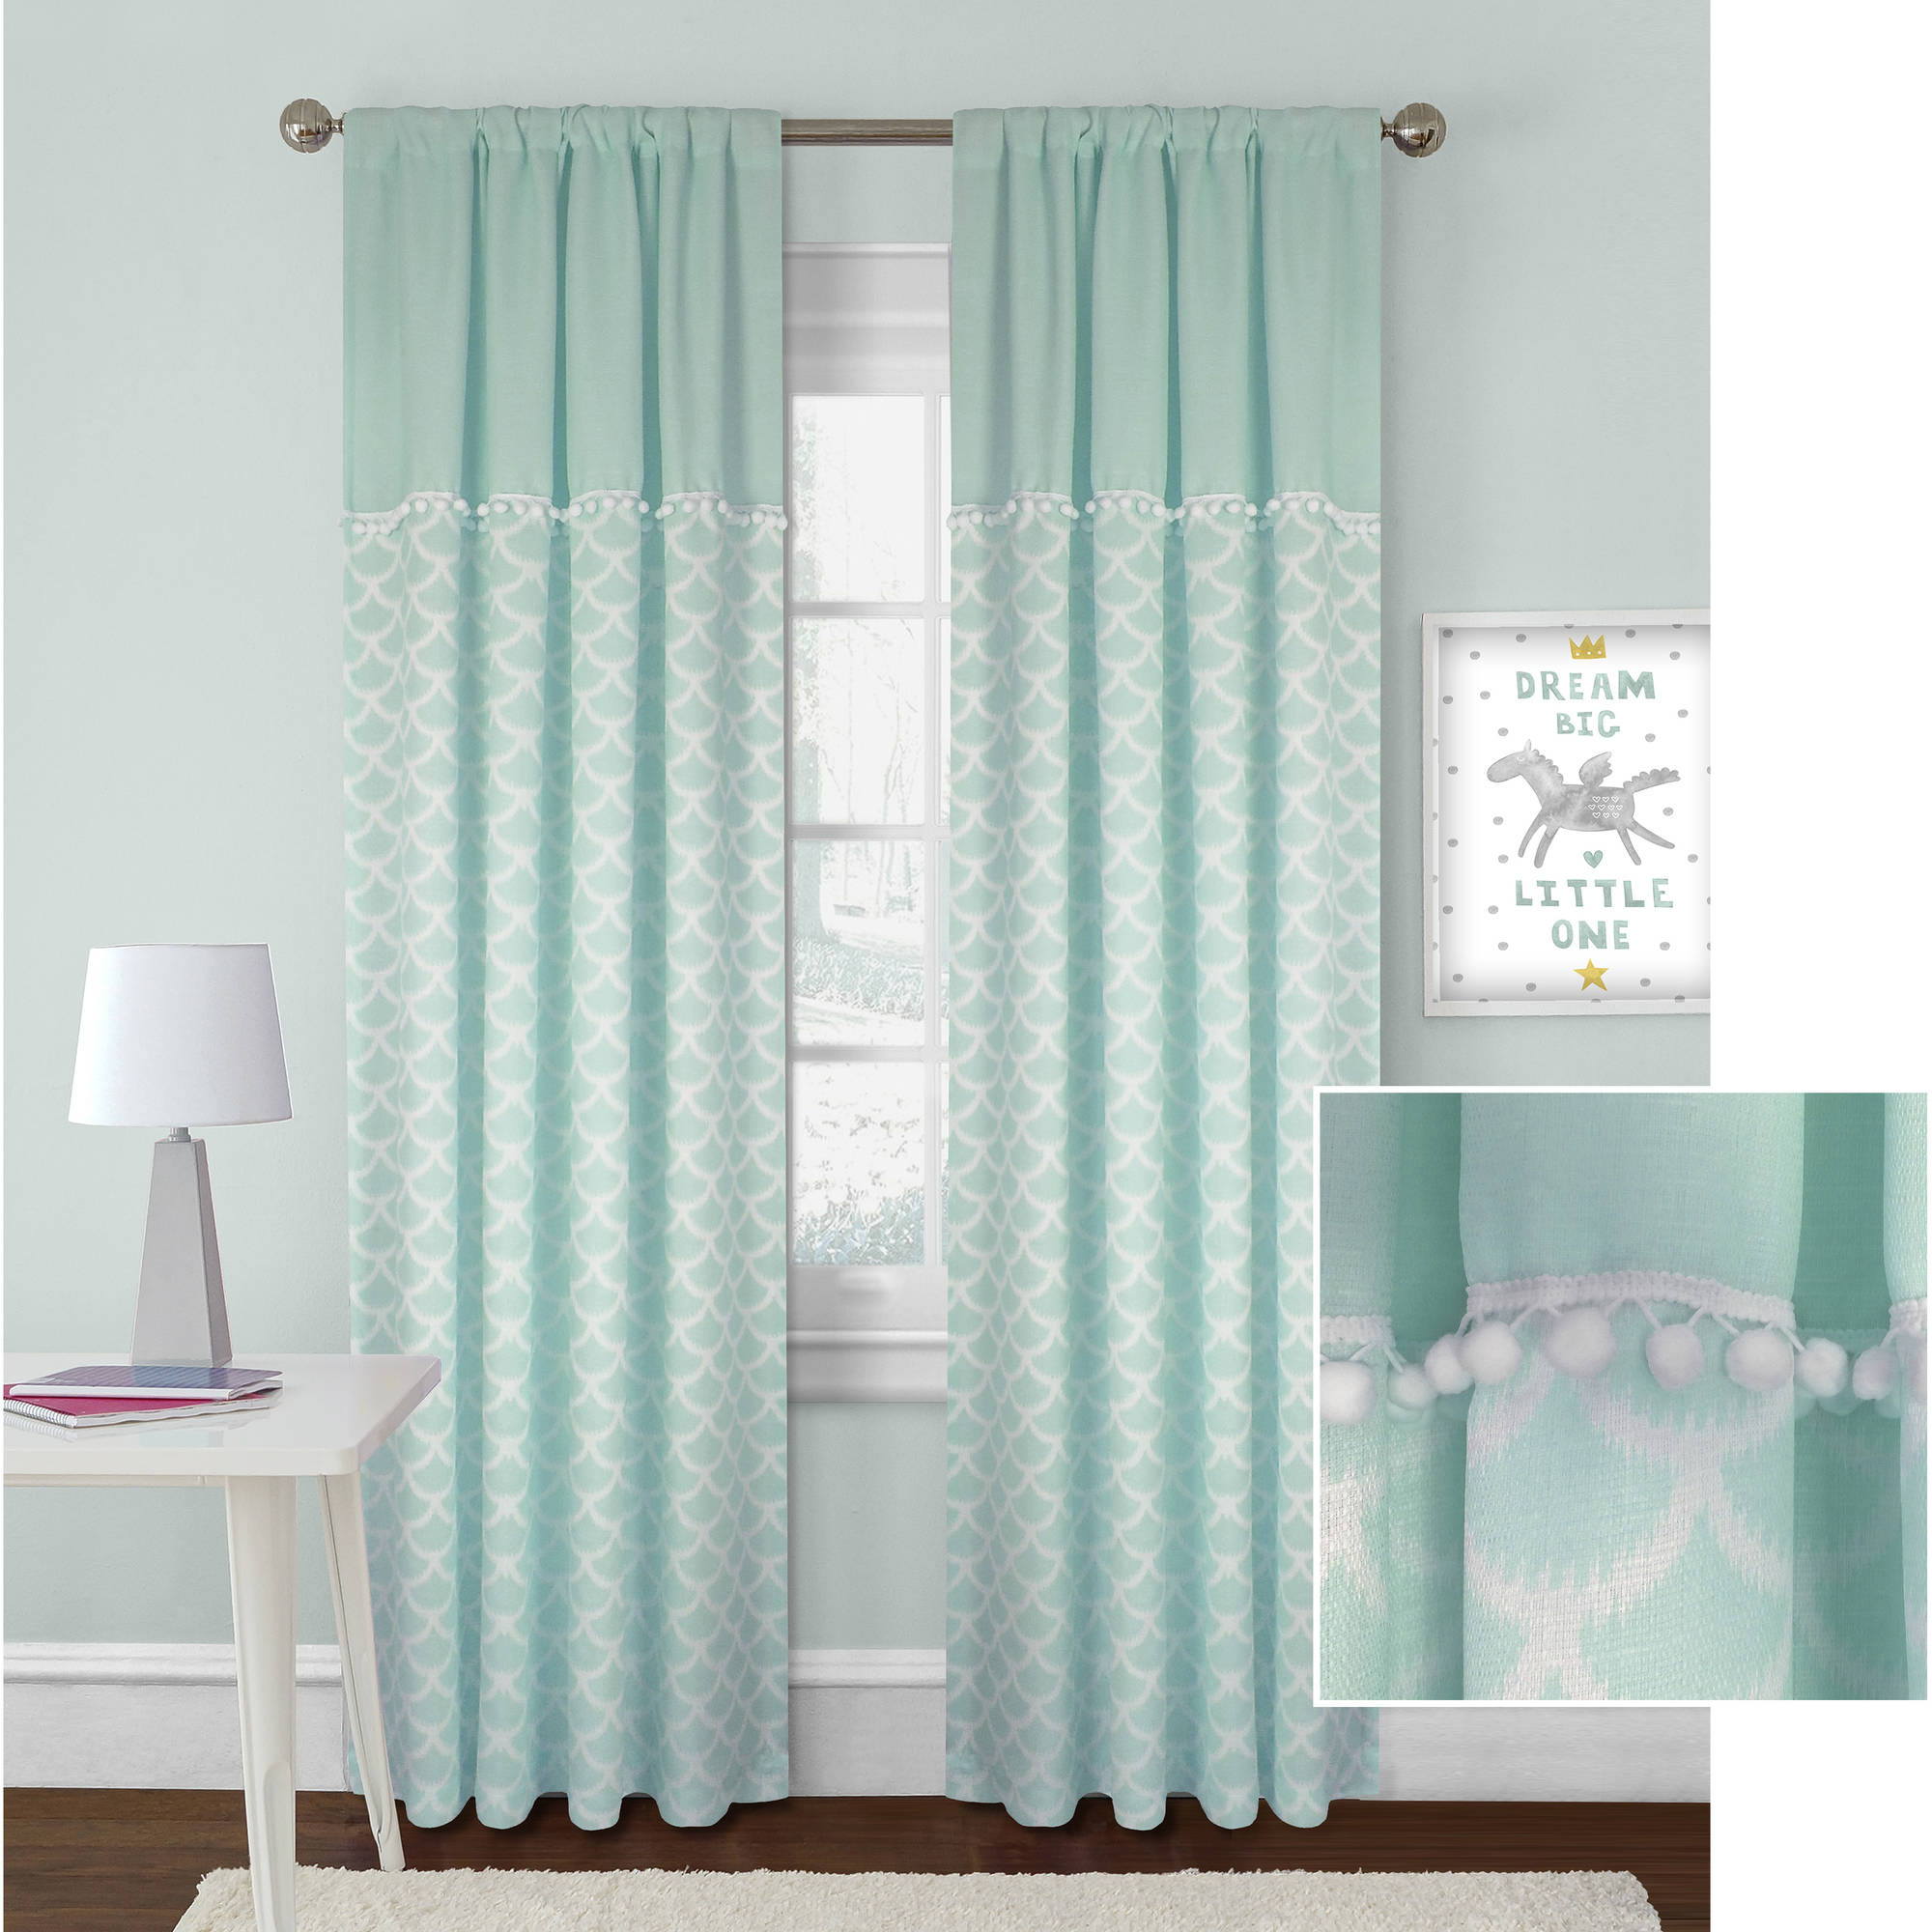 Better Homes and Gardens Scallops with Poms Curtain Panel by Colordrift LLC